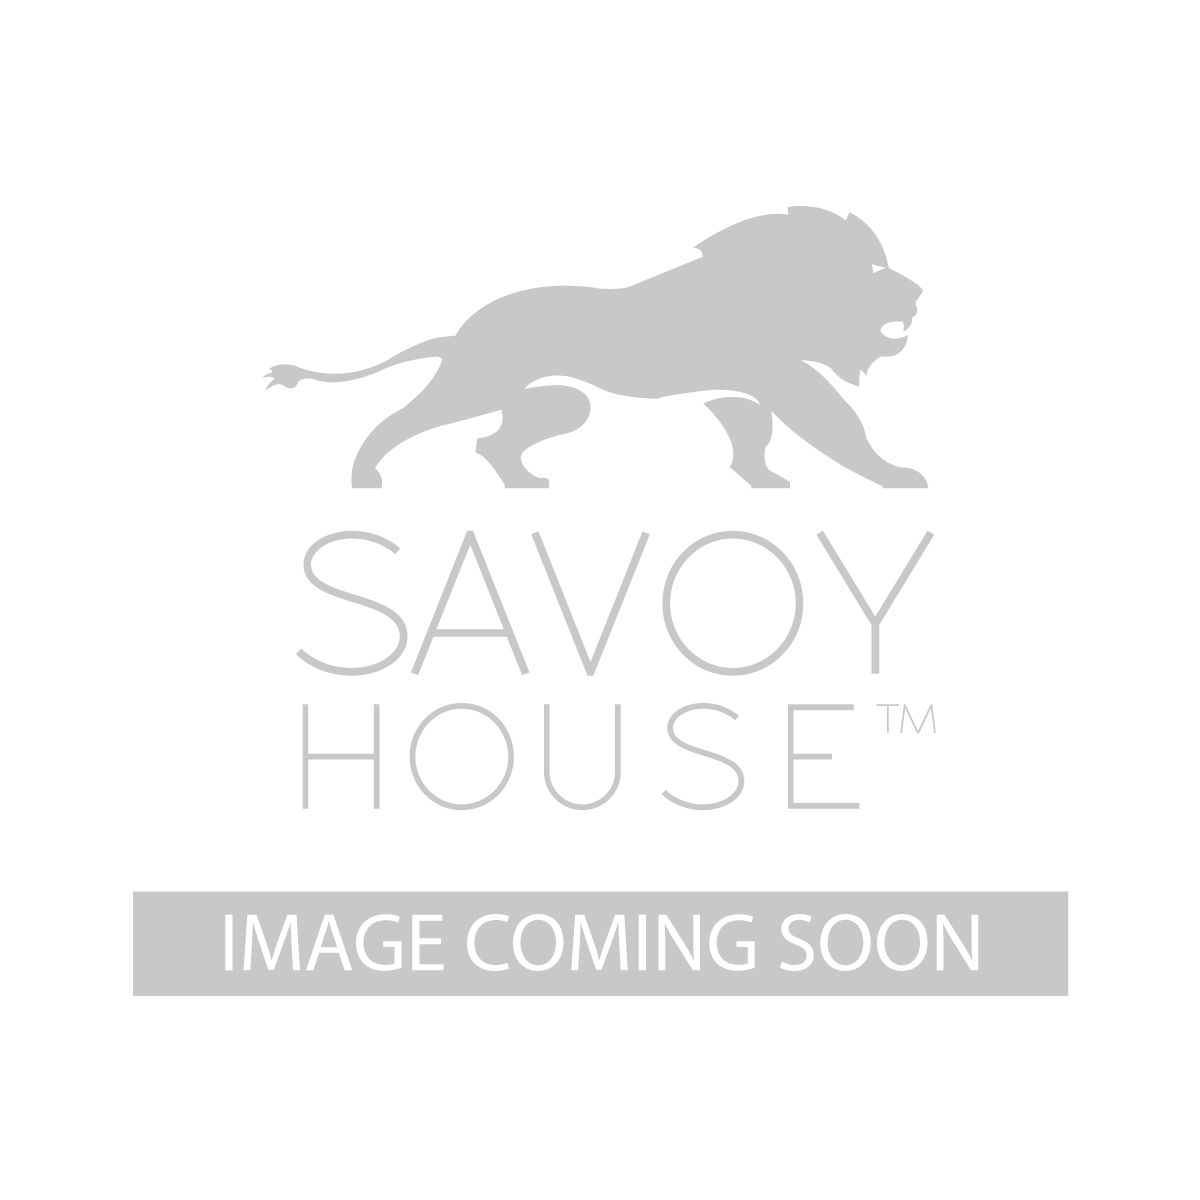 9 101 1 109 fremont 1 light sconce by savoy house for Www savoyhouse com